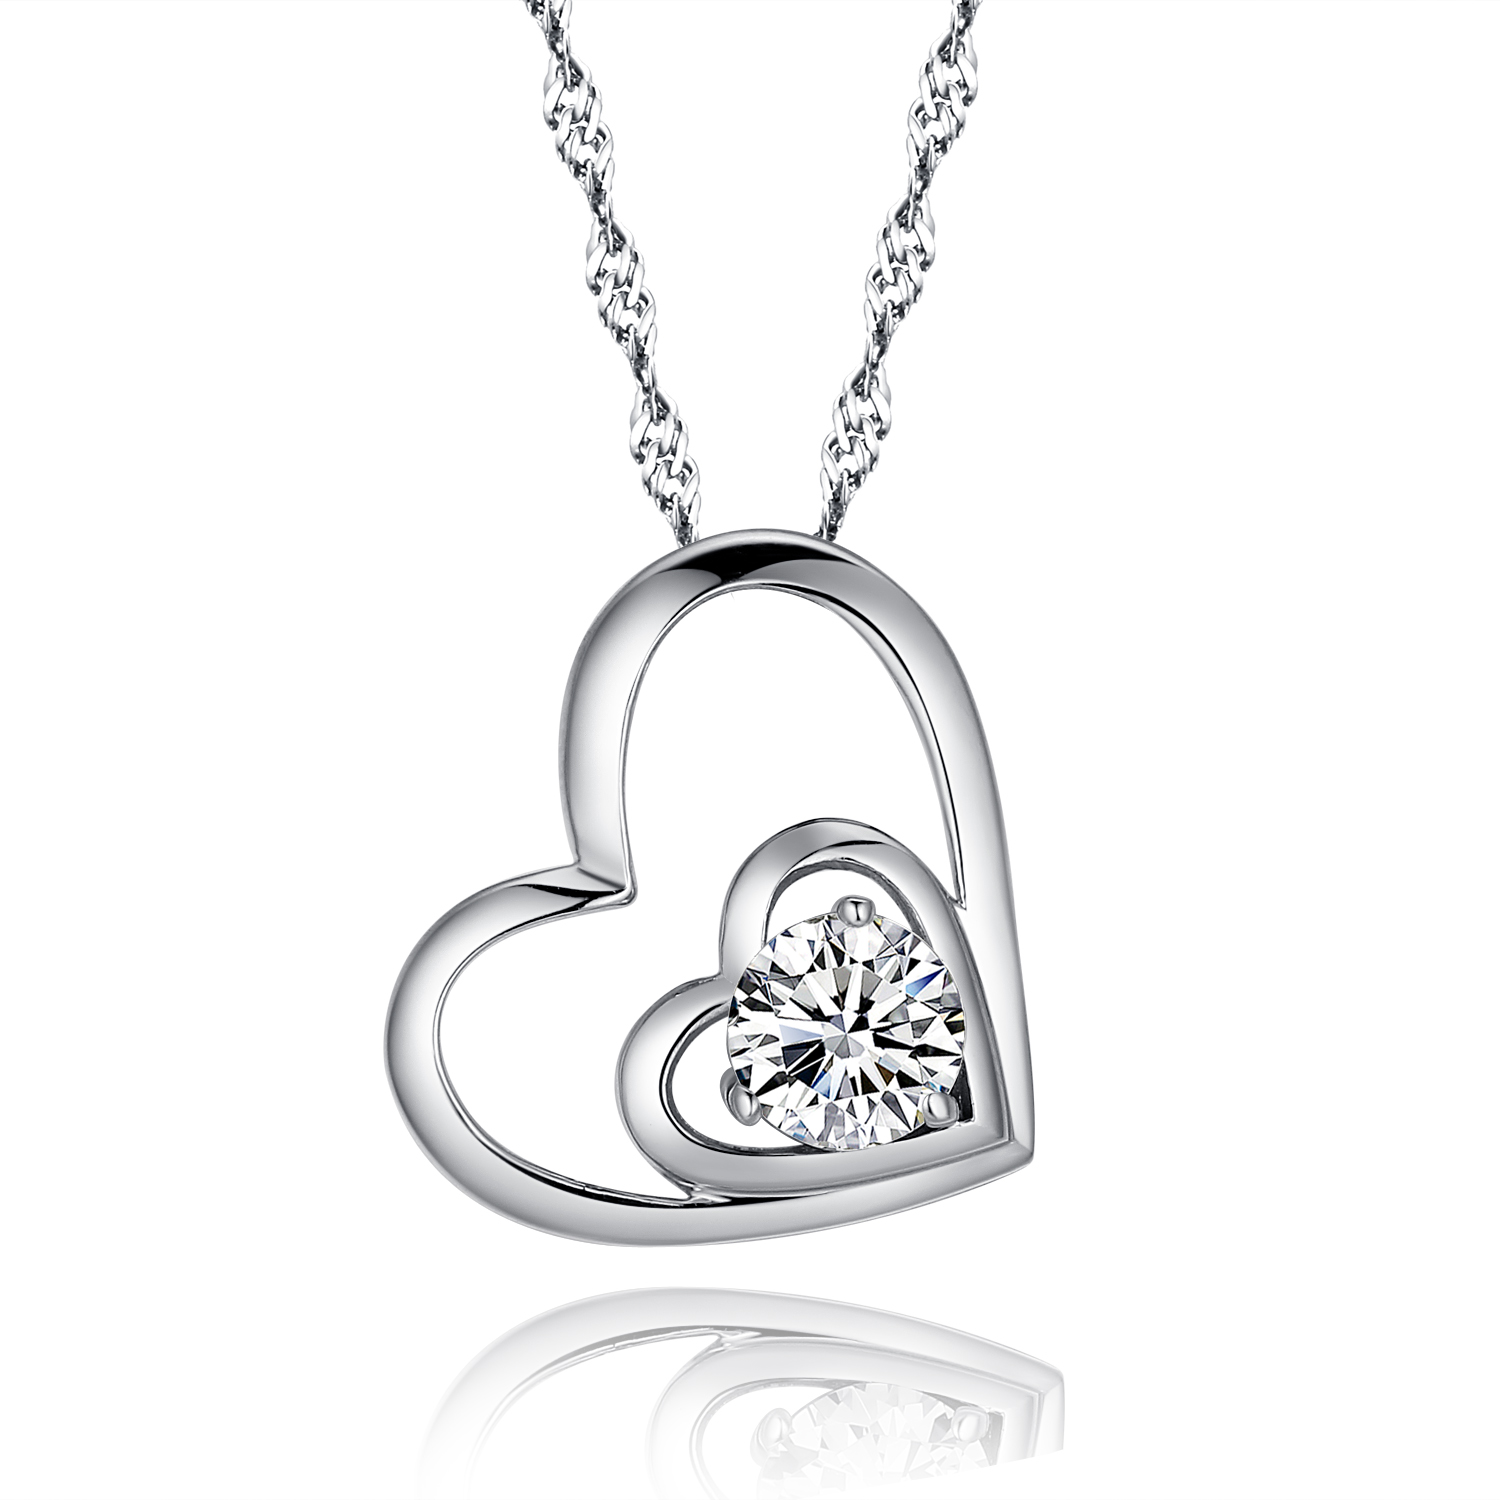 silver pendant necklace 925-sterling-silver-double-love-open-heart-w- qlkchbu